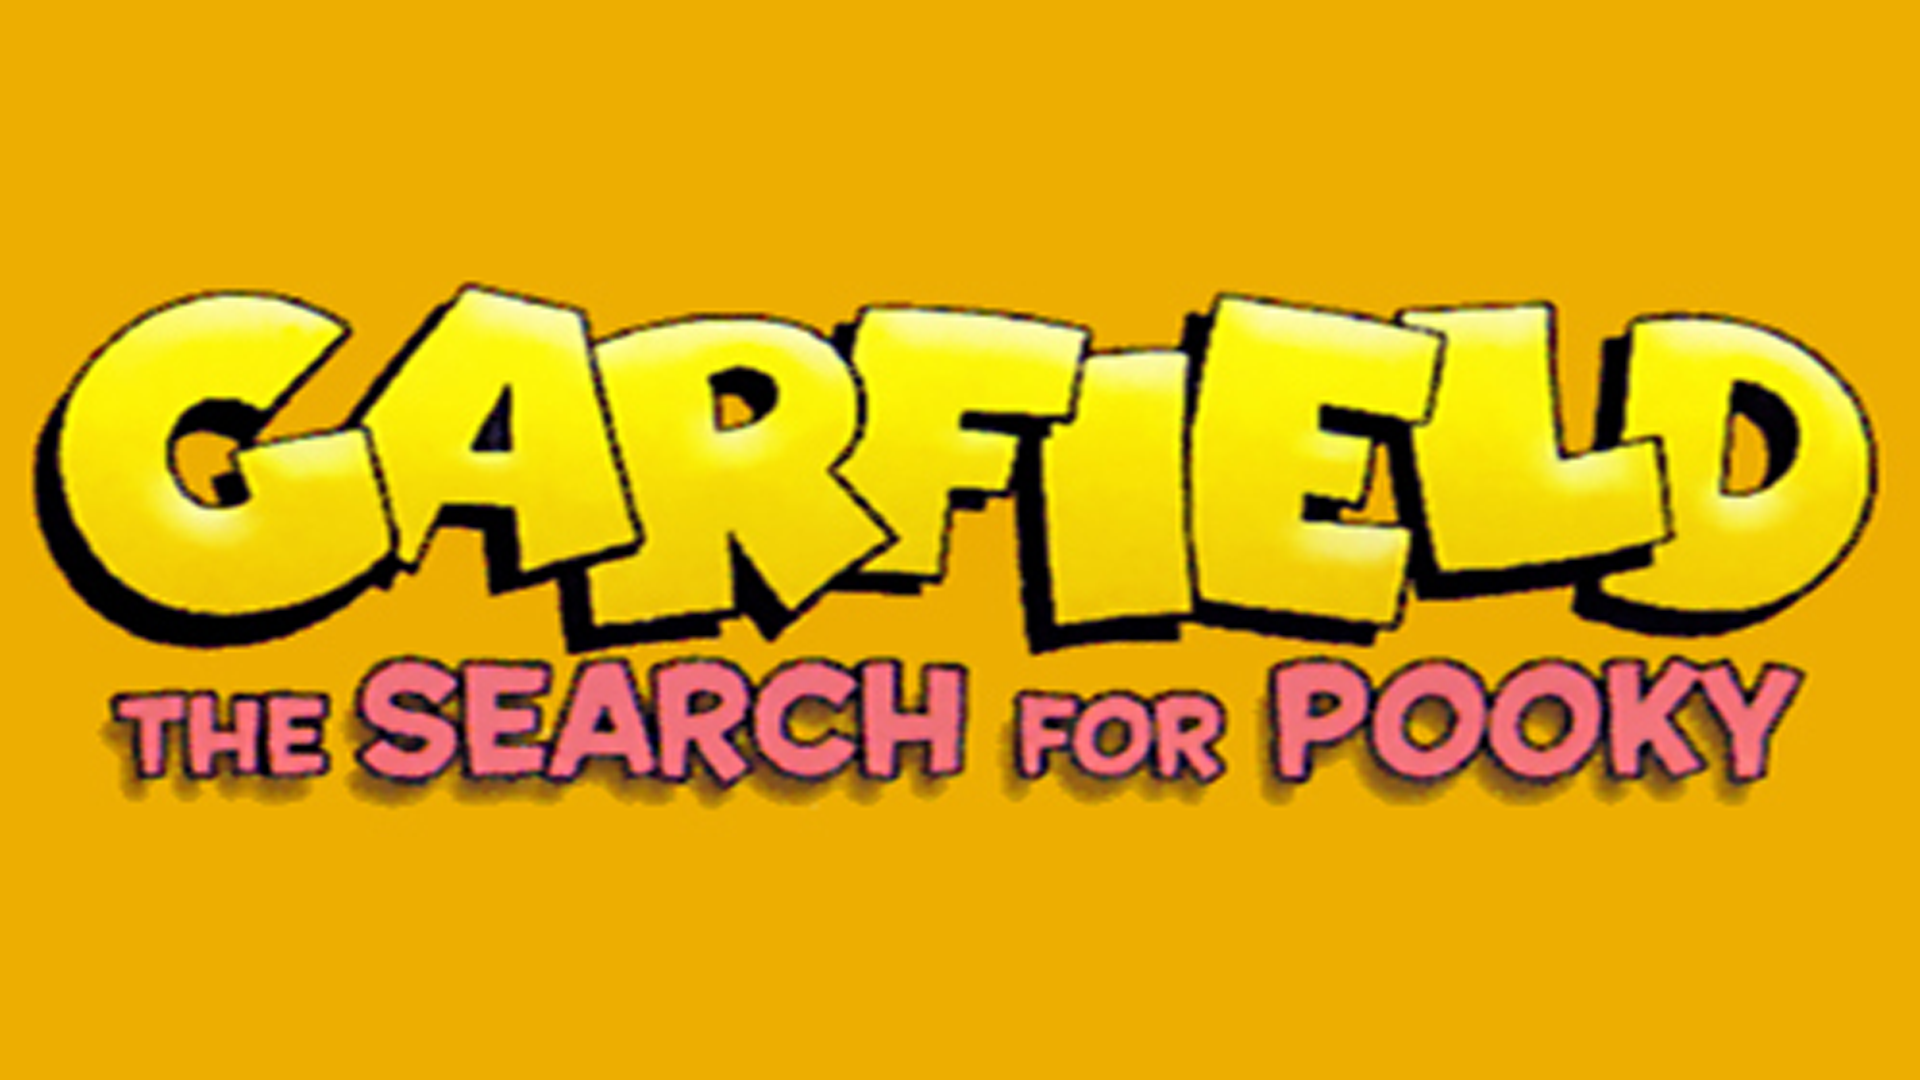 Garfield: The Search for Pooky Logo